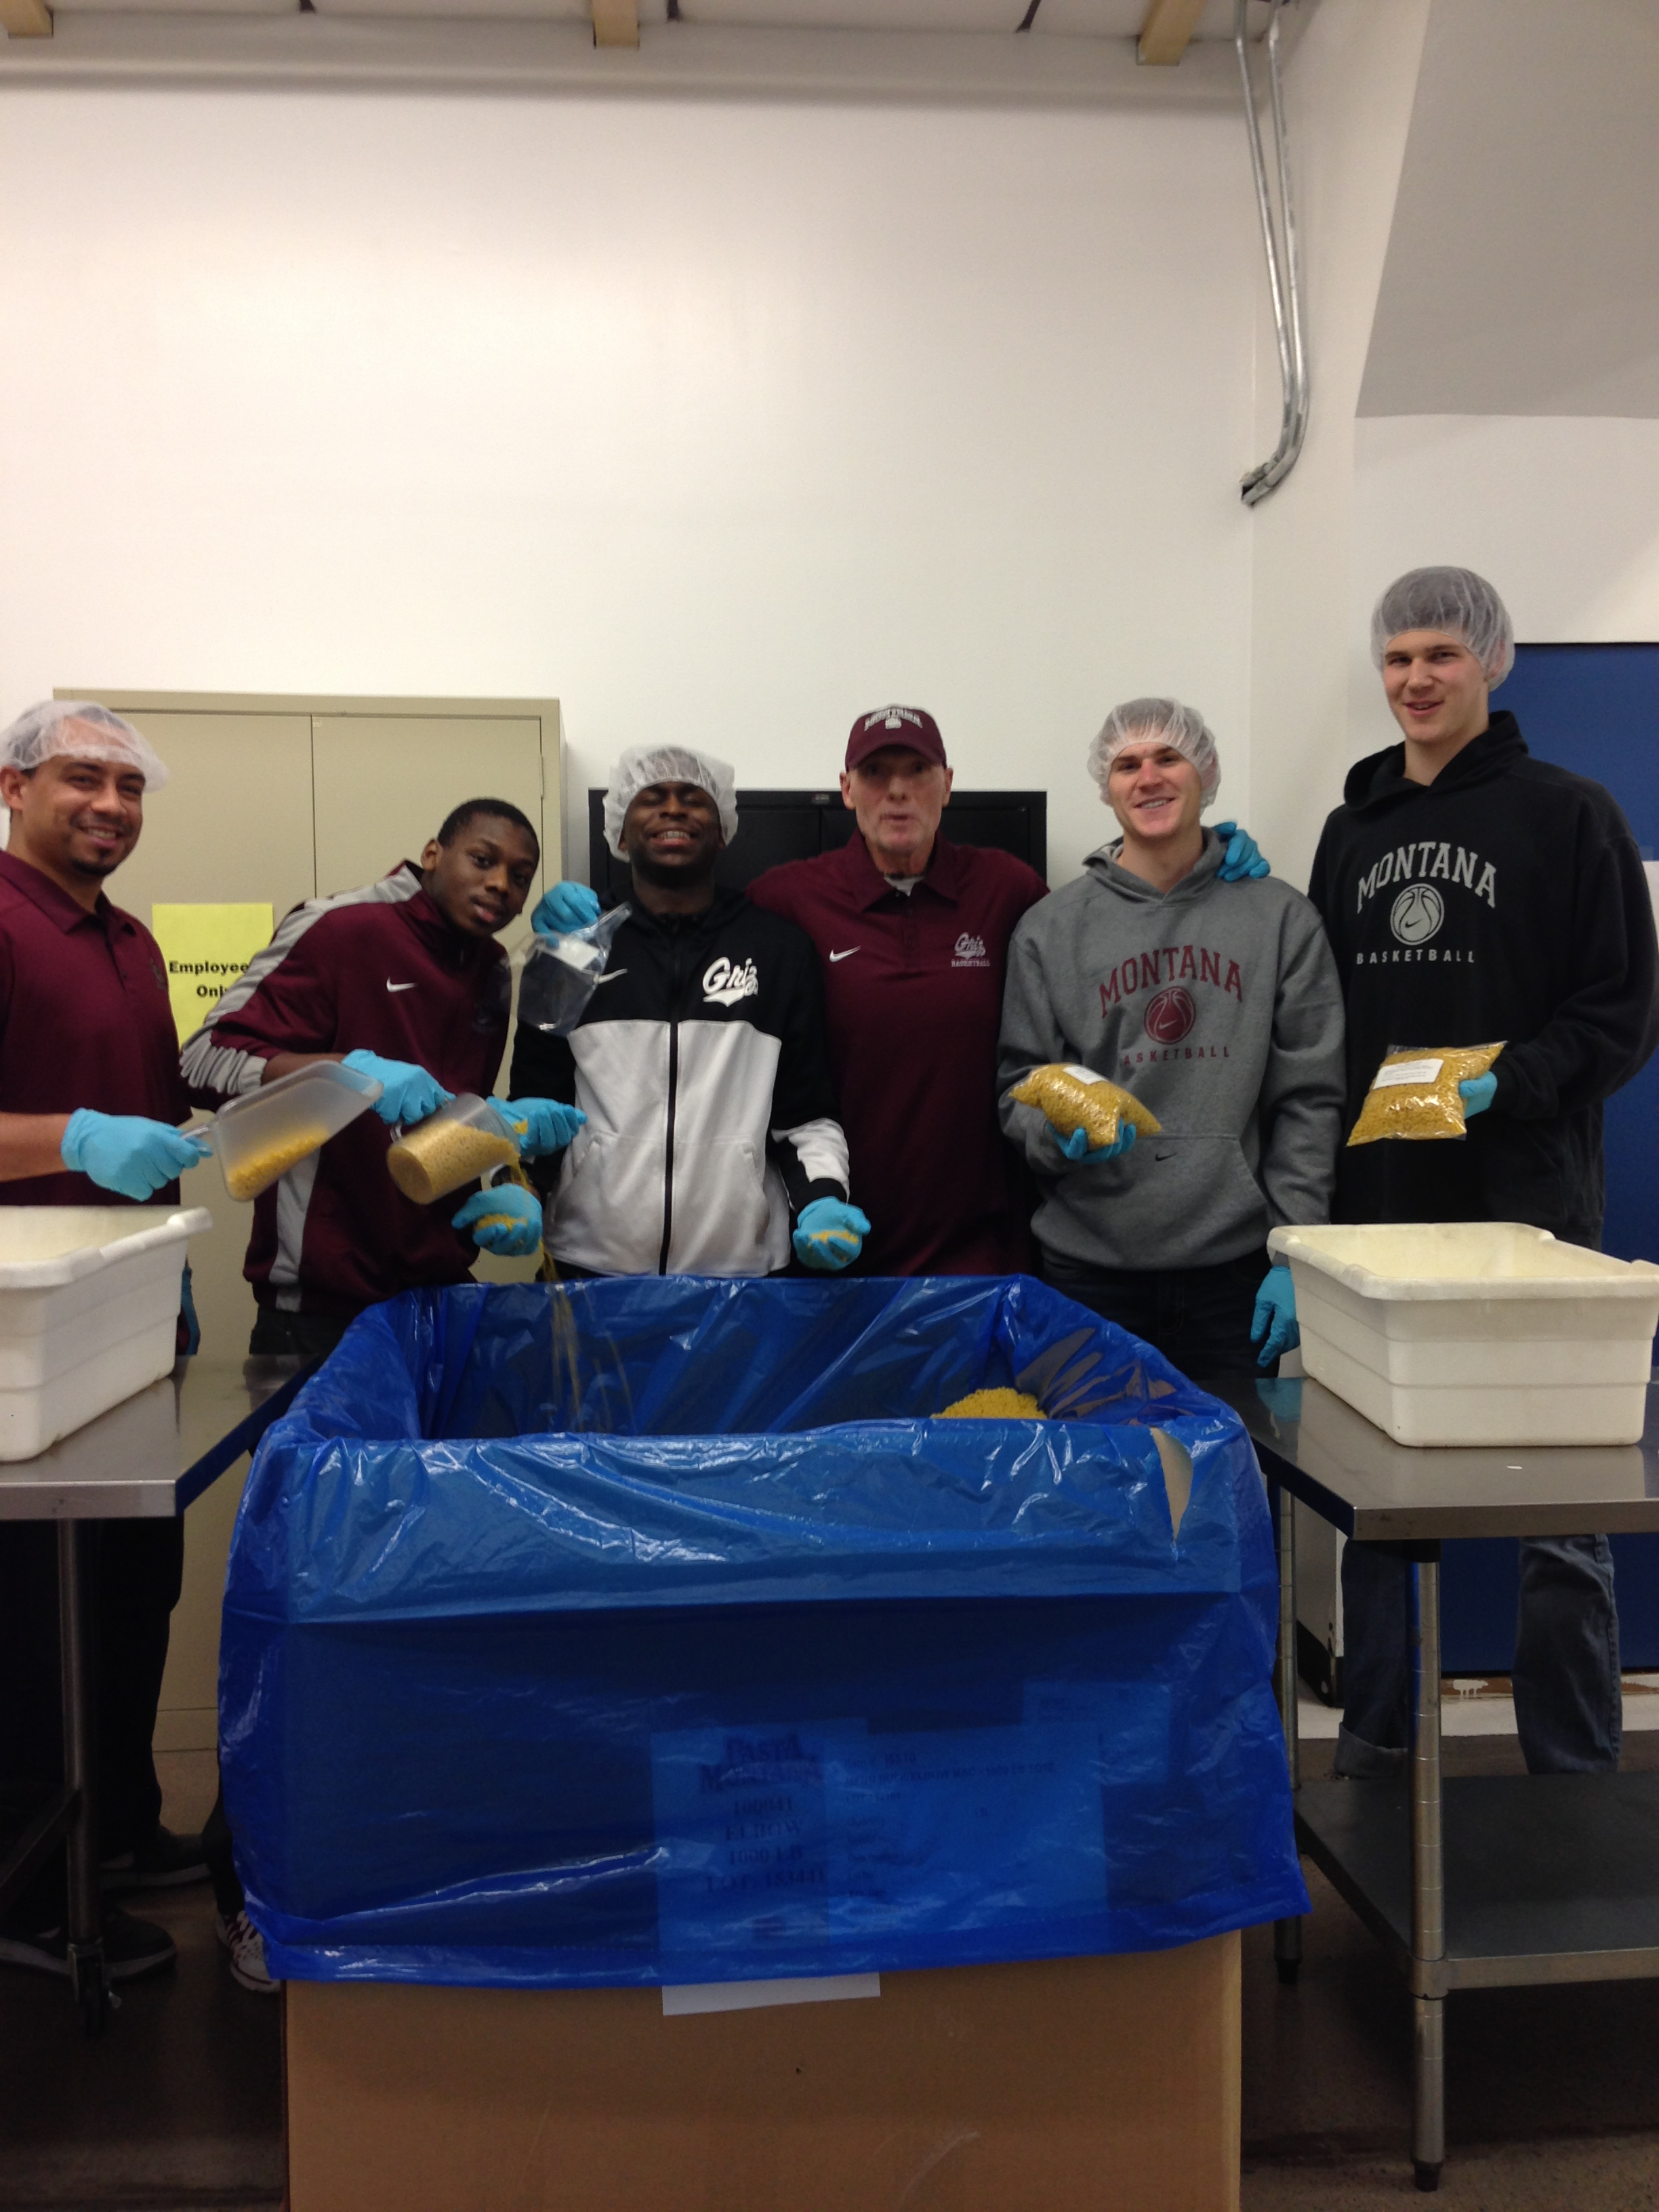 Players and coaches from the Griz basketball team volunteered tonight at the Montana Food Bank Network.